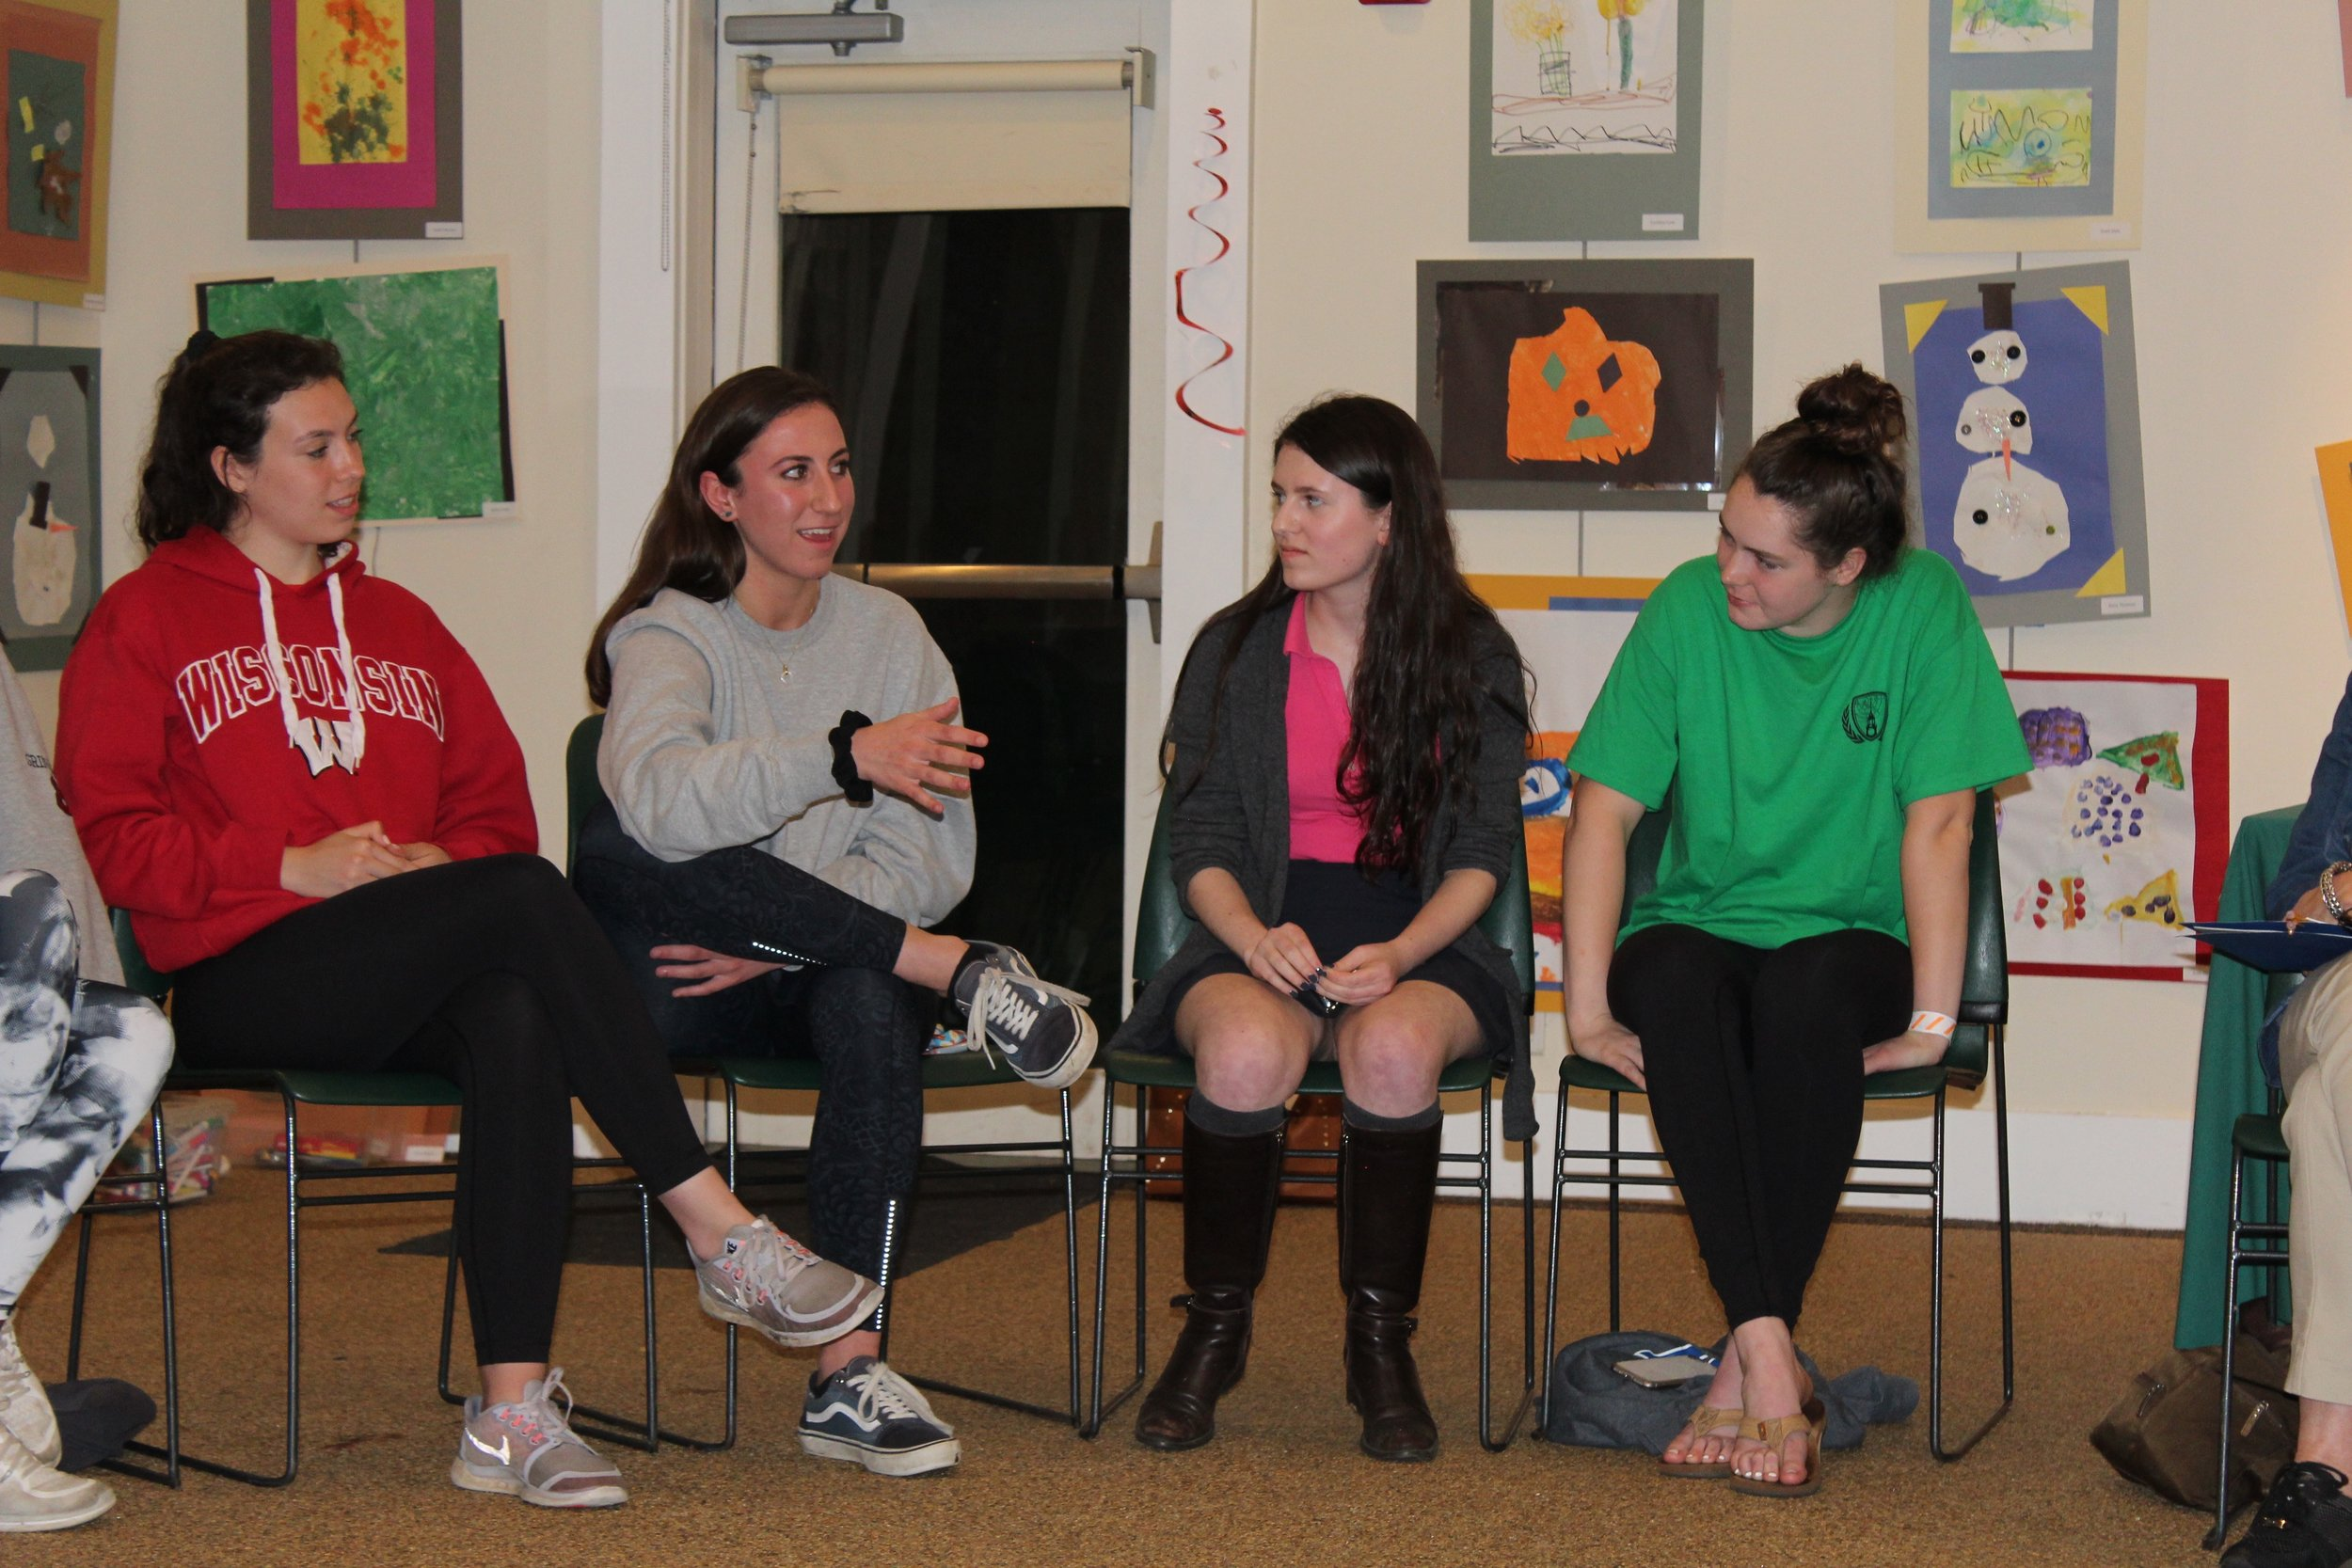 50+ high school LiveGirls discuss the issues that matter most to them.